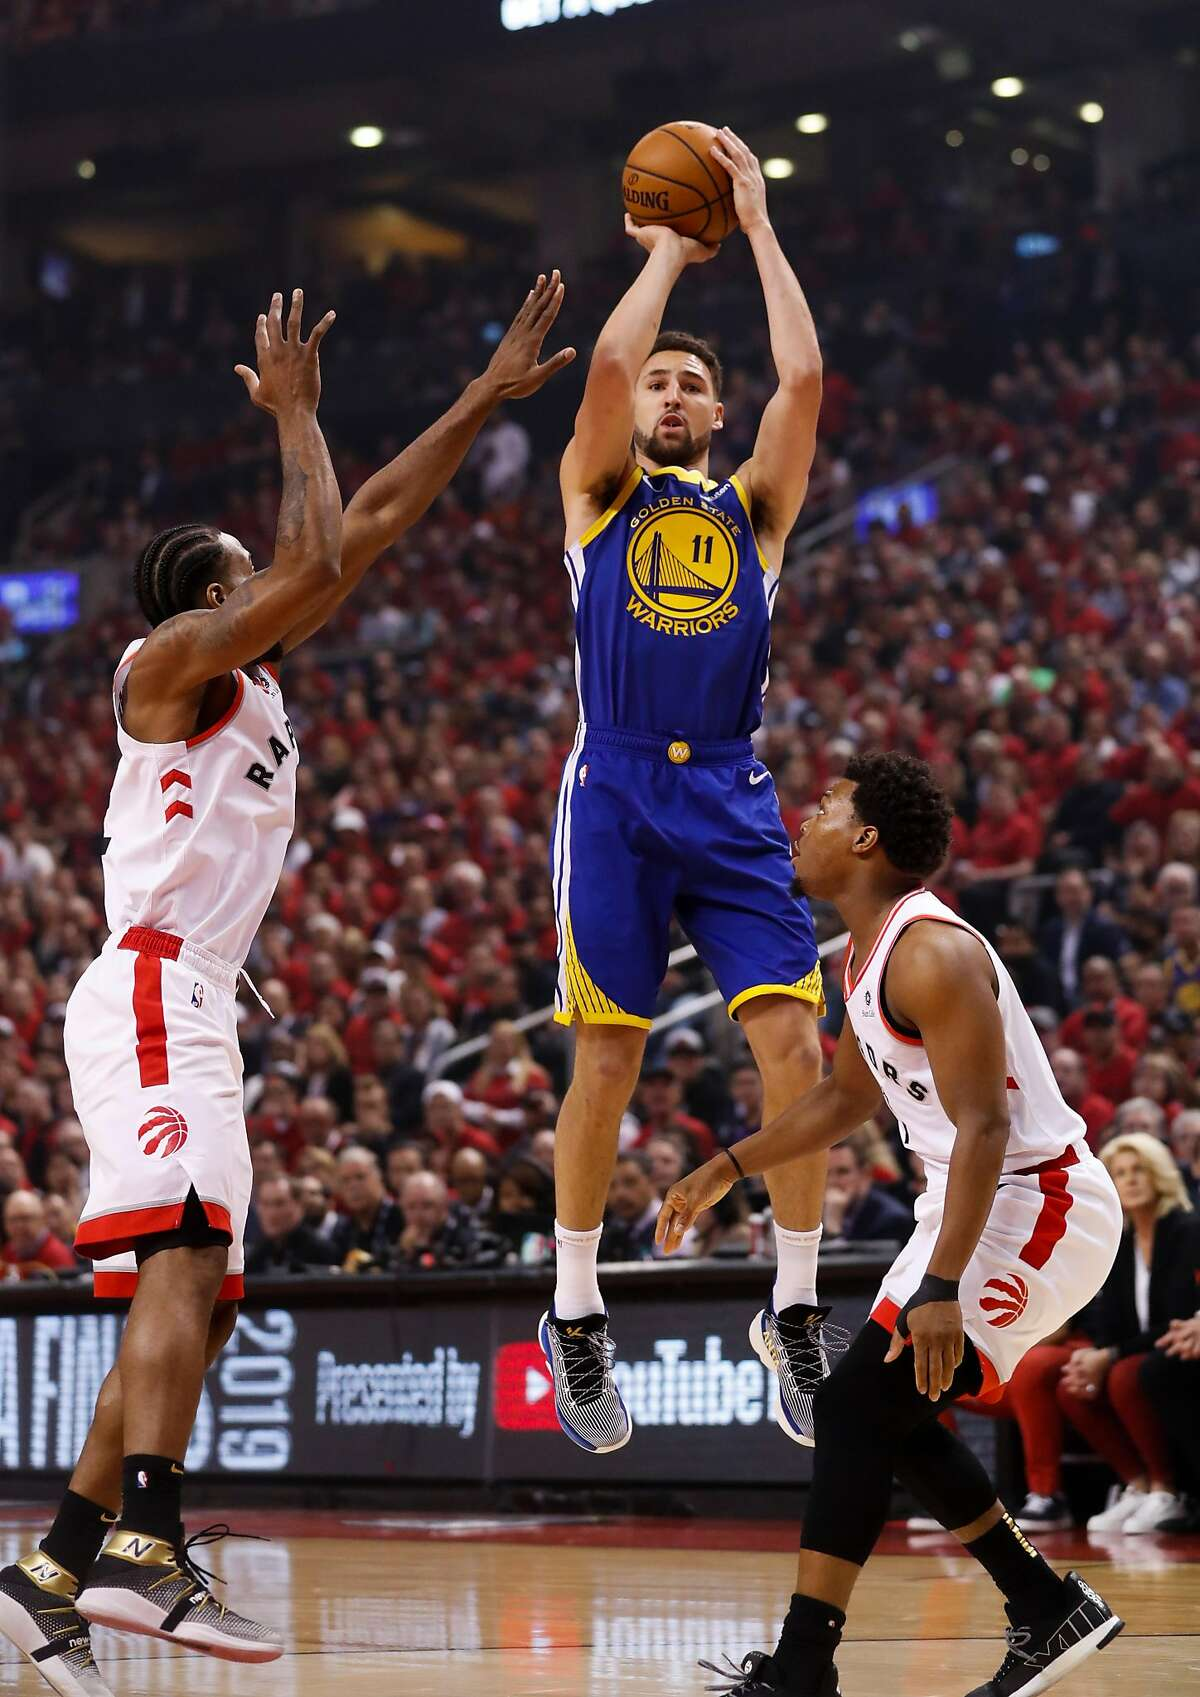 Golden State Warriors' Klay Thompson shoots over Toronto Raptors' Kawhi Leonard and Kyle Lowry in the first quarter during game 2 of the NBA Finals between the Golden State Warriors and the Toronto Raptors at Scotiabank Arena on Sunday, June 2, 2019 in Toronto, Ontario, Canada.